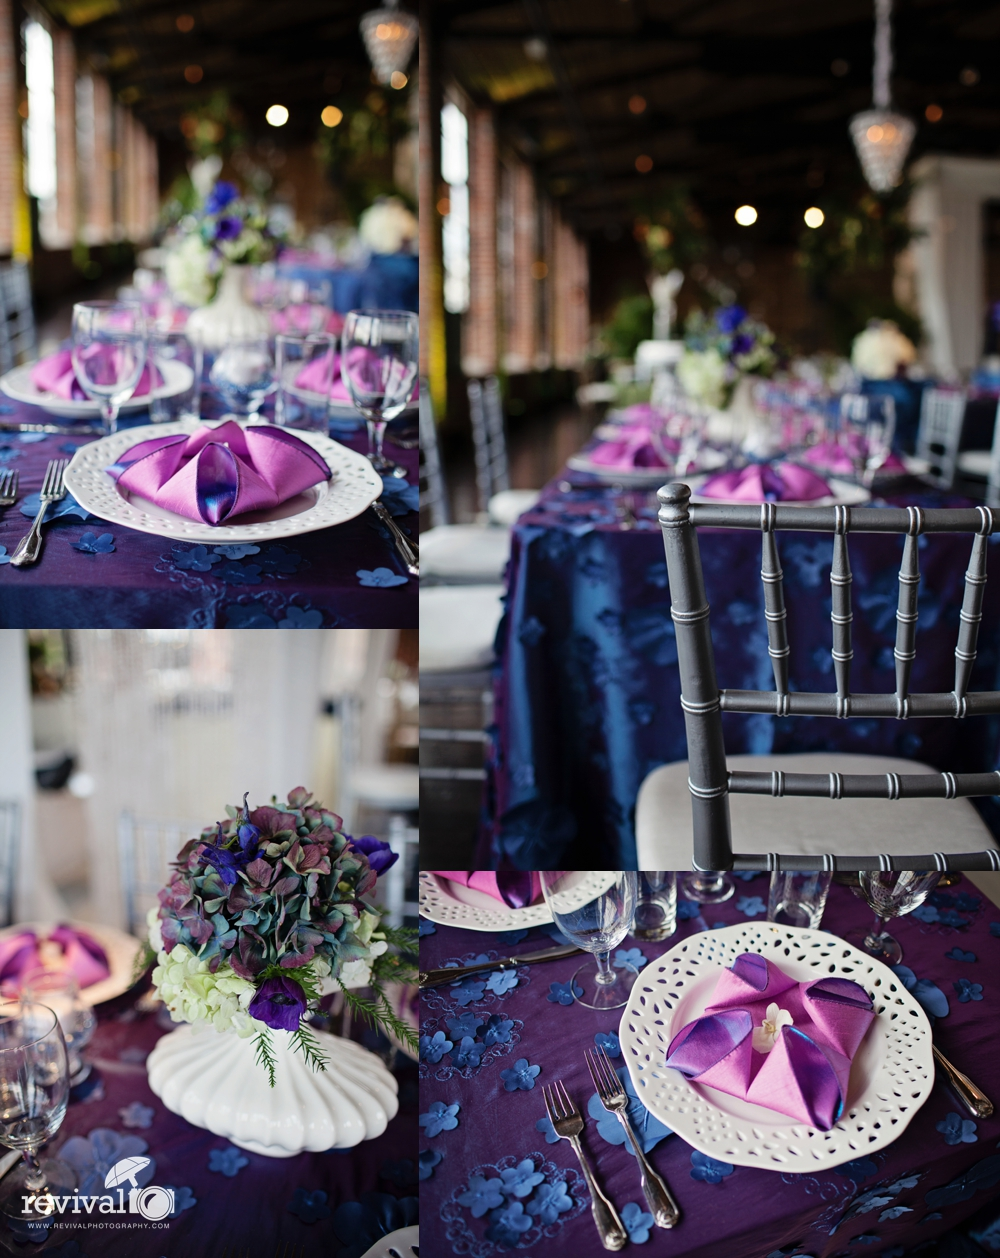 6 types of centerpieces for weddings were kind of in love with centerpieces for weddings vibrant and colorful centerpieces for weddings flowers for weddings photo by revival photography junglespirit